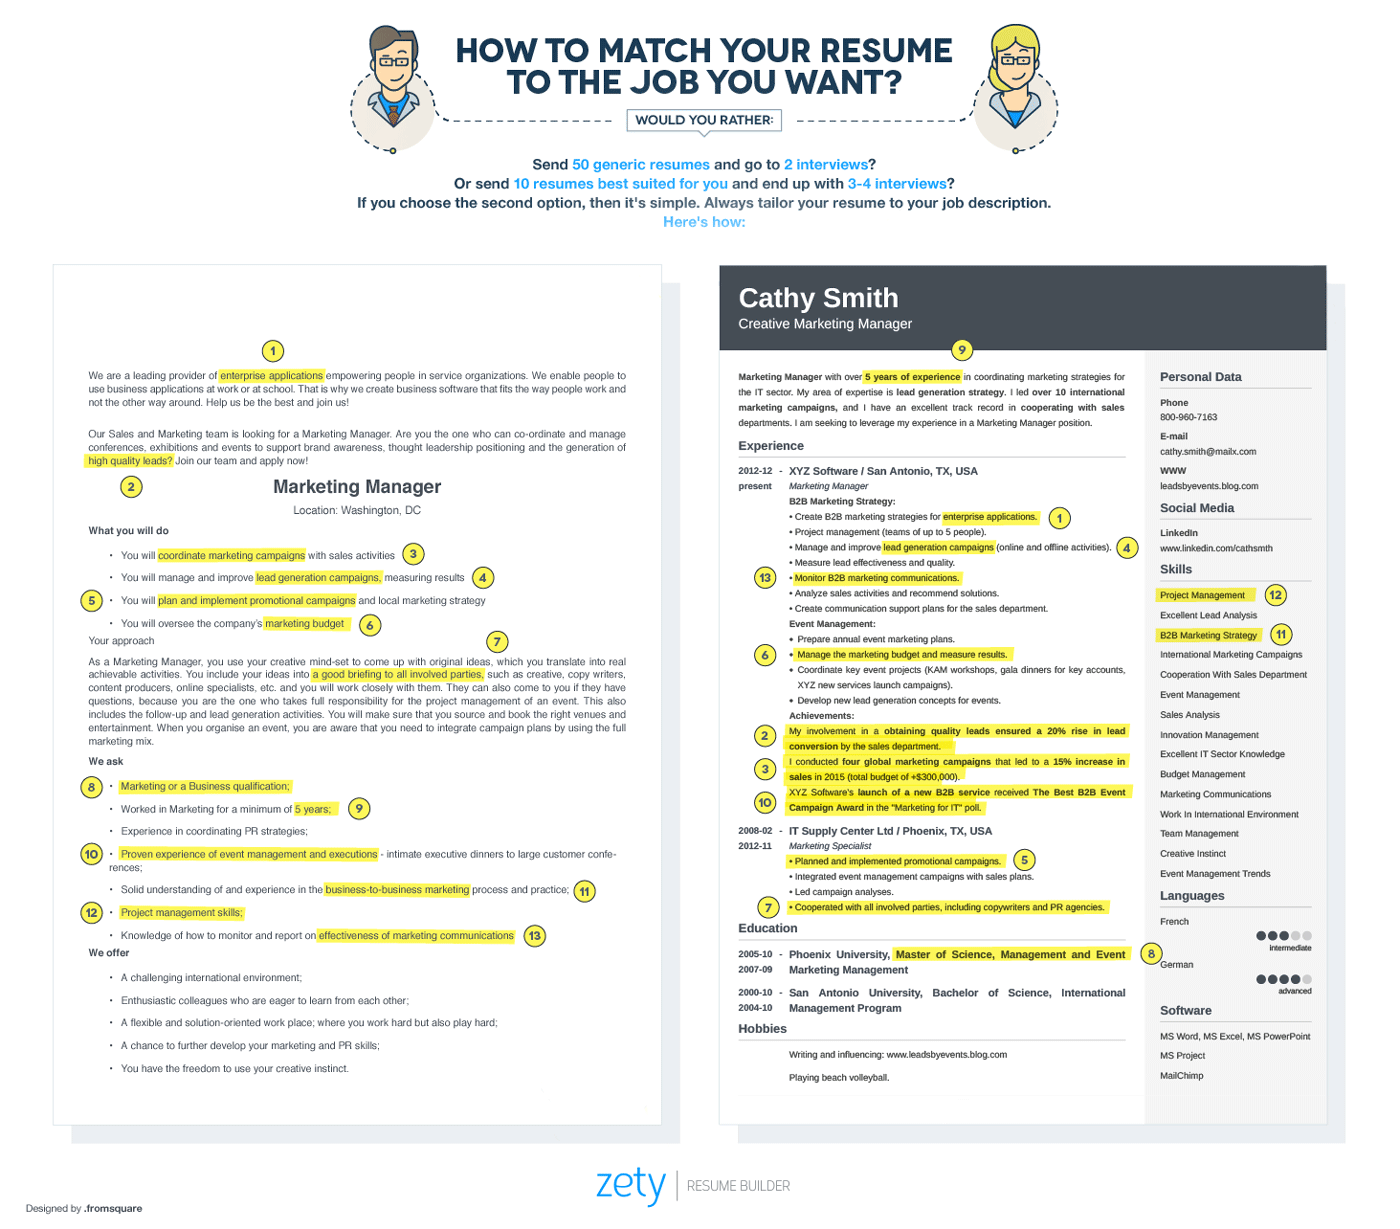 Tailoring Resume To A Job Description Good Resume Examples How To Make Resume Resume